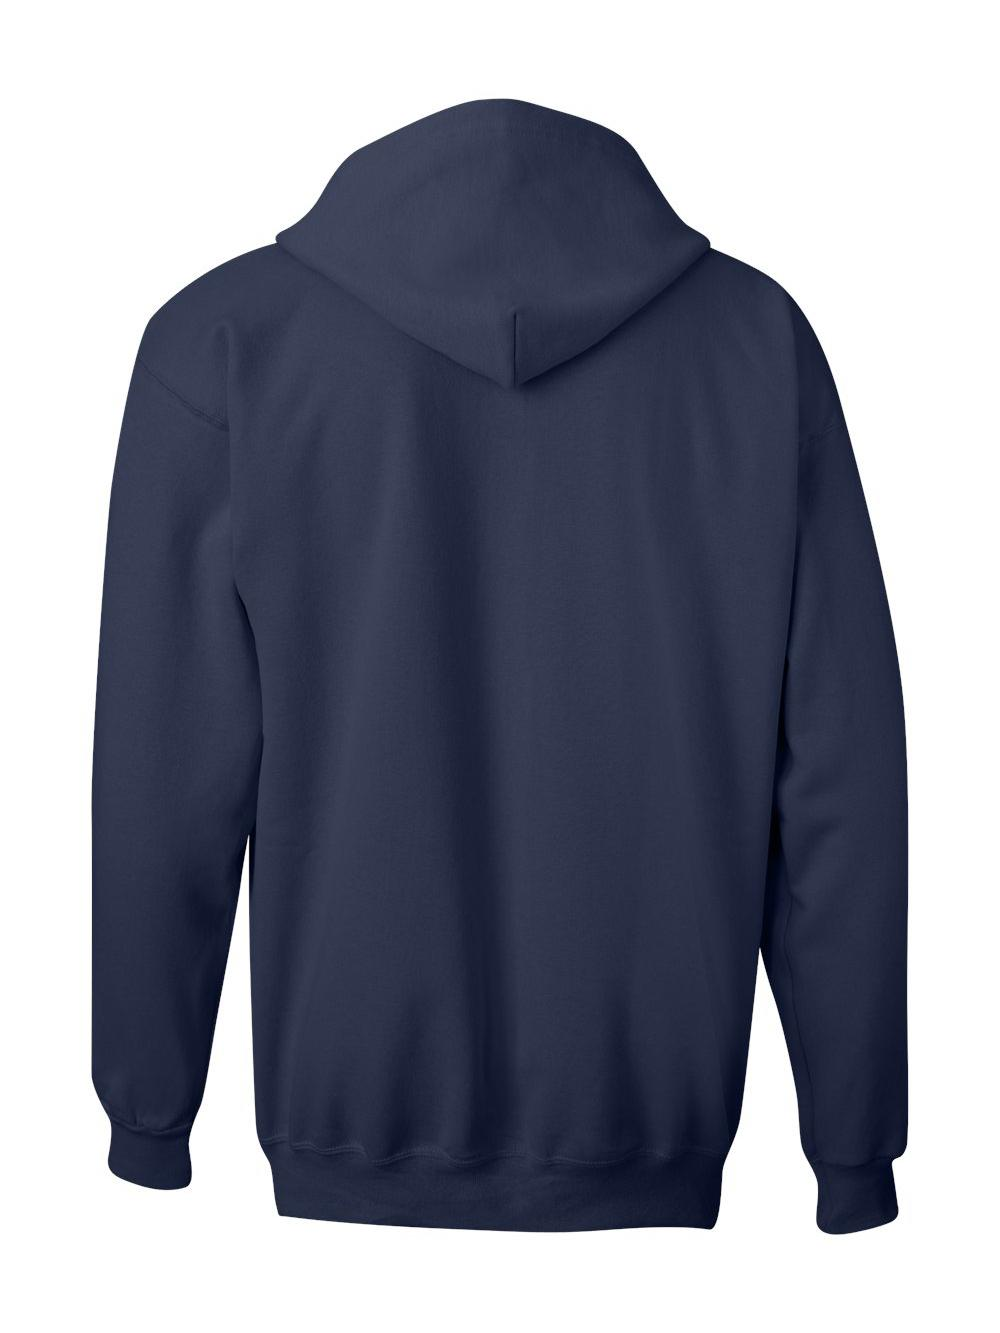 Hanes-Ultimate-Cotton-Full-Zip-Hooded-Sweatshirt-F280 thumbnail 16